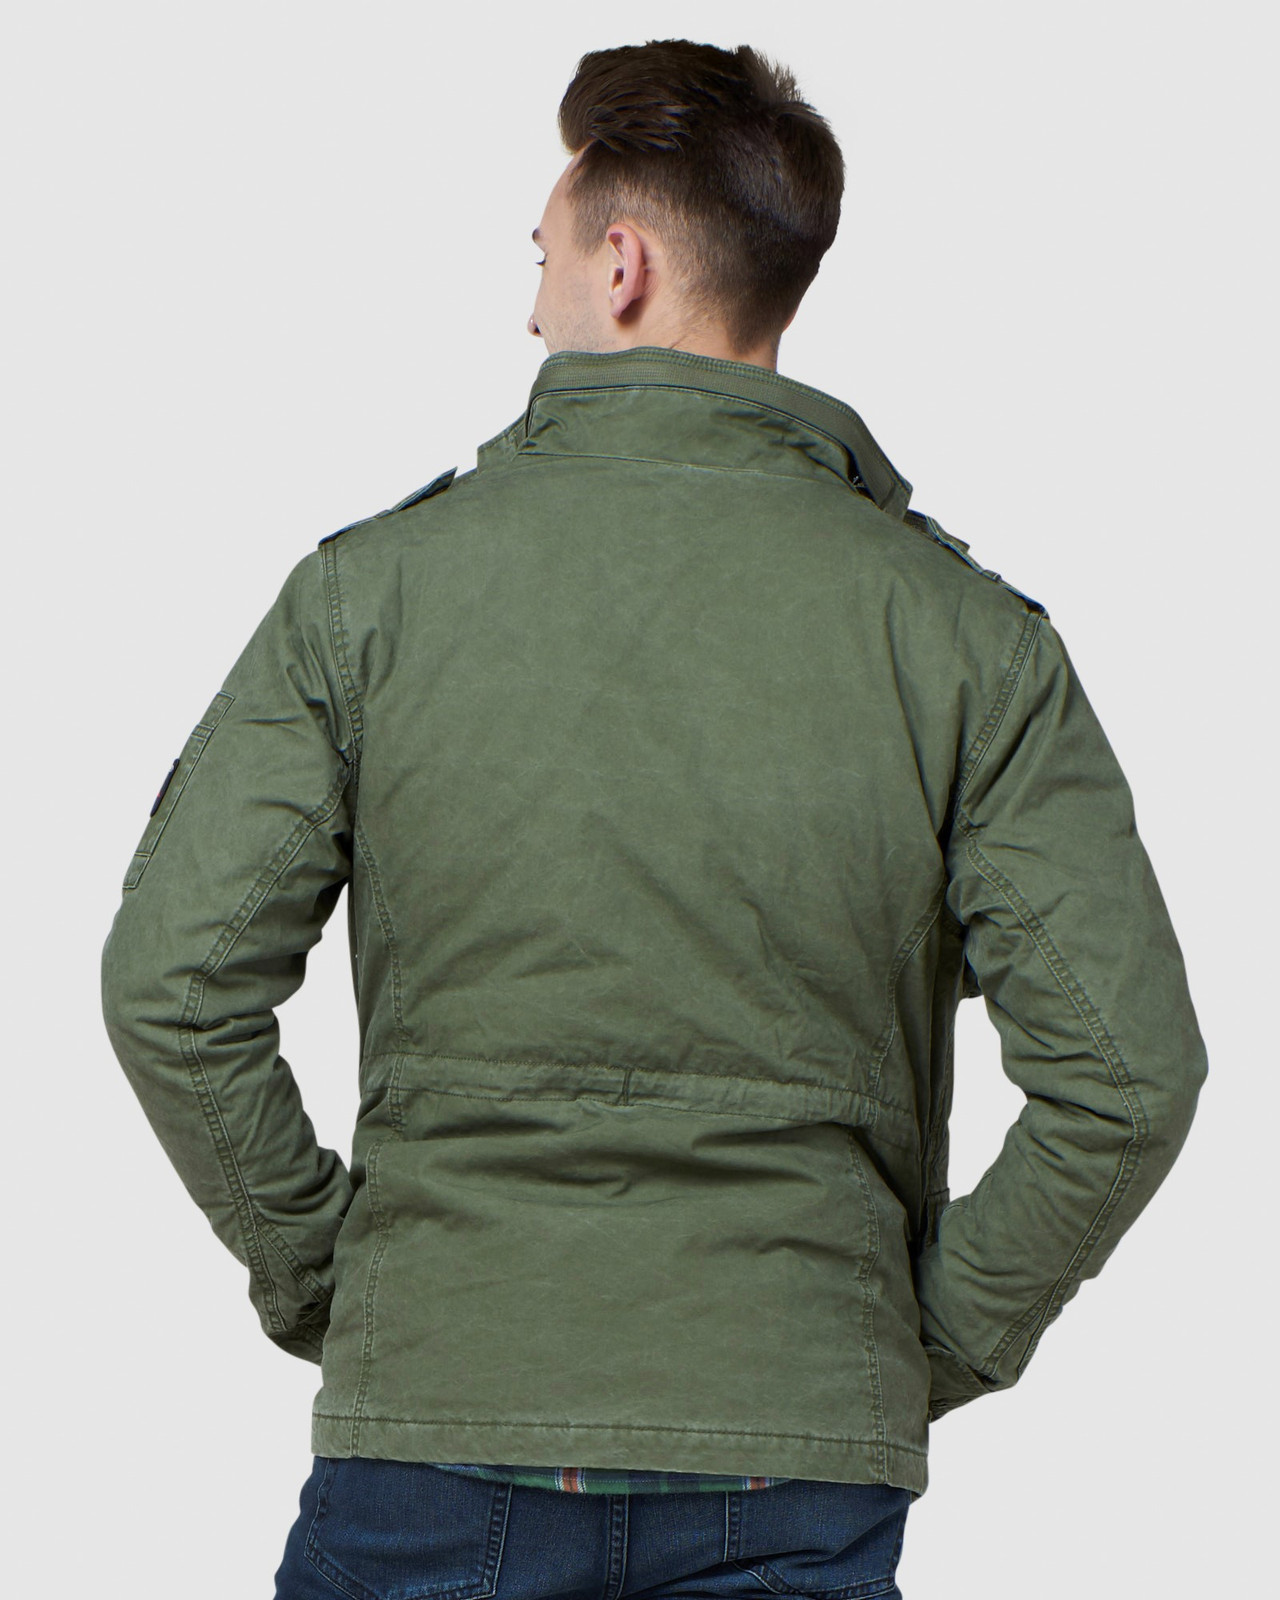 Superdry Mens CLASSIC ROOKIE JACKET Green Military Jackets 3